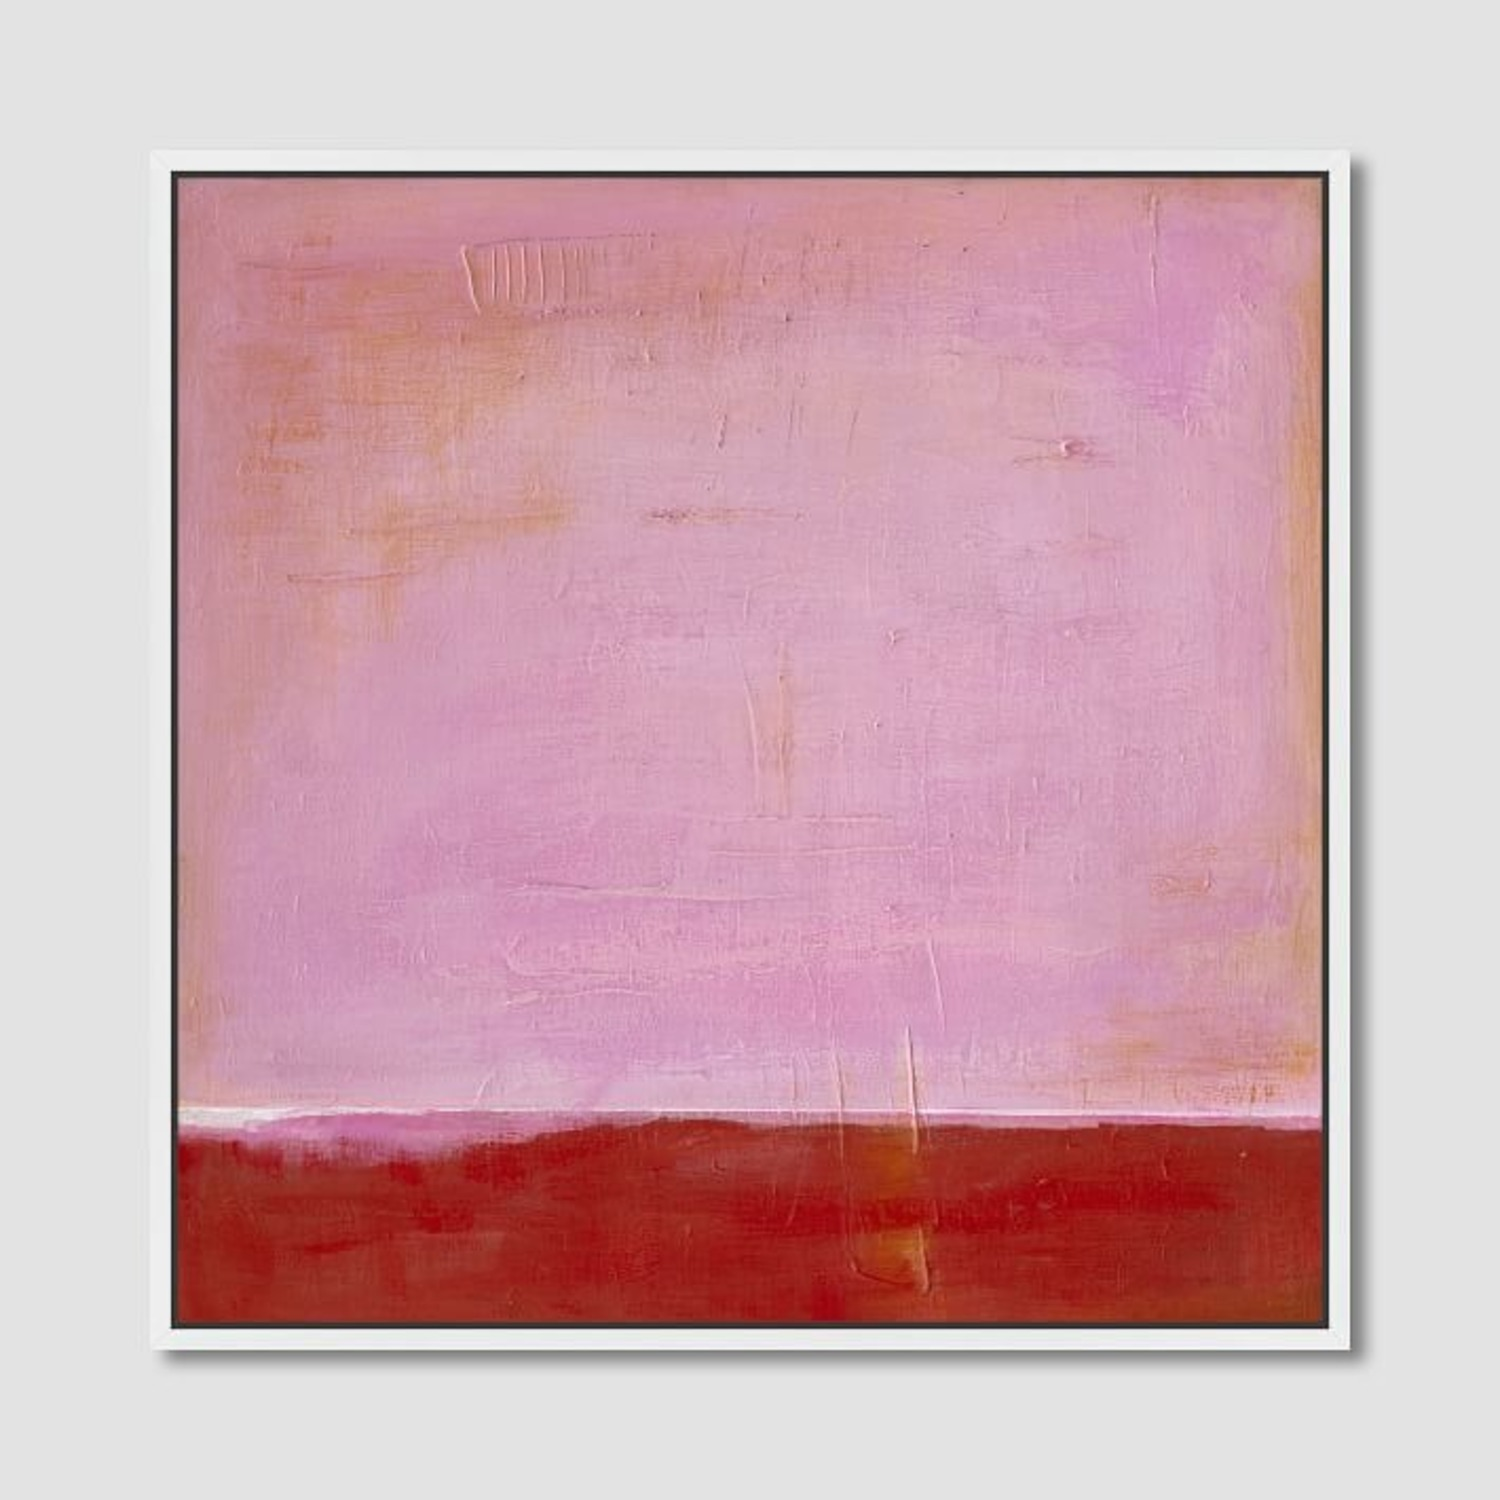 West Elm Red on Pink by Laura Gunn 24 x 24 - image-2